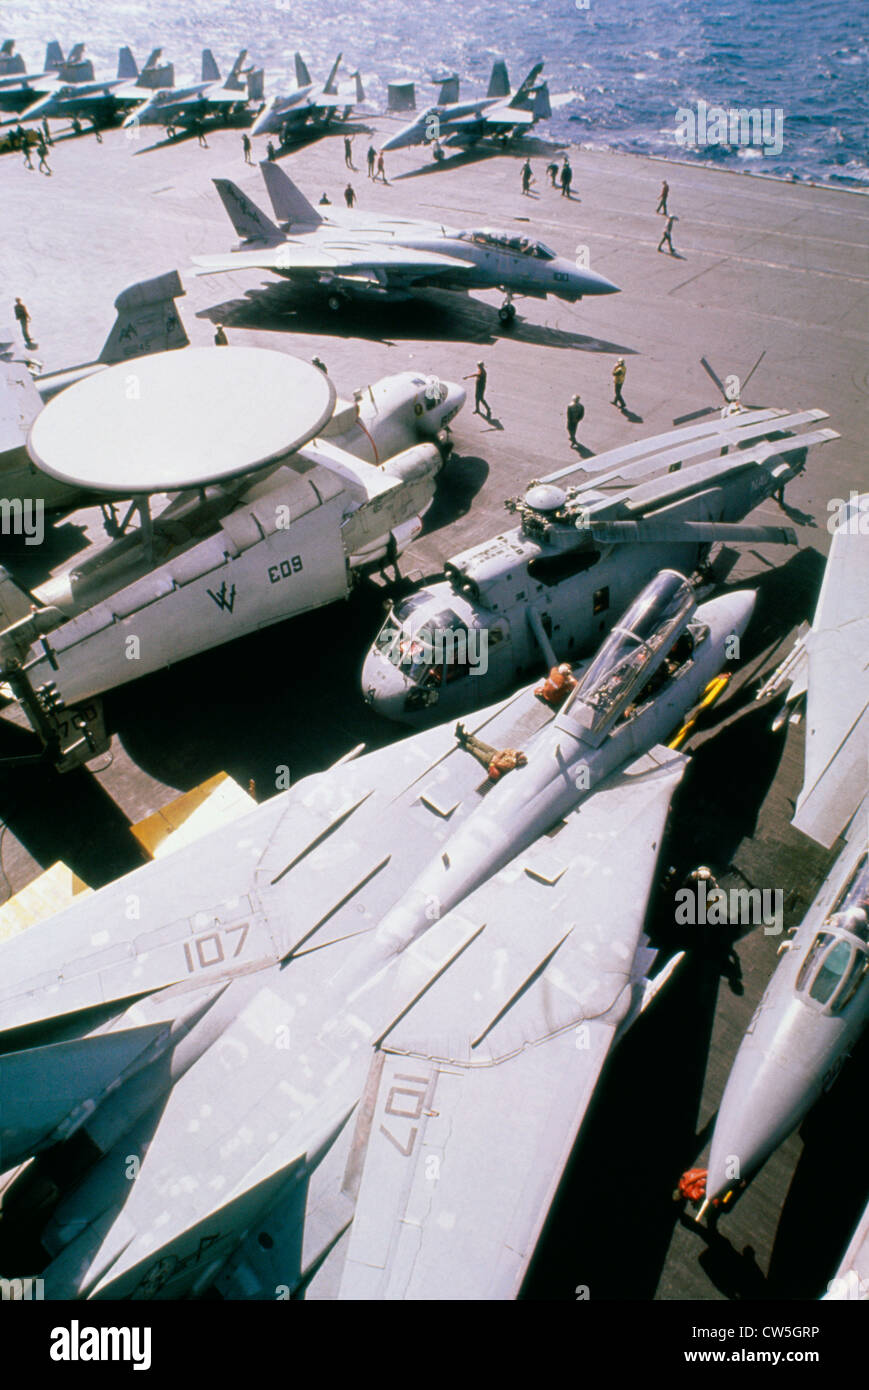 High angle view military aircraft on an aircraft carrier in Red Sea during Operation Desert Storm F-14A Tomcat E - Stock Image